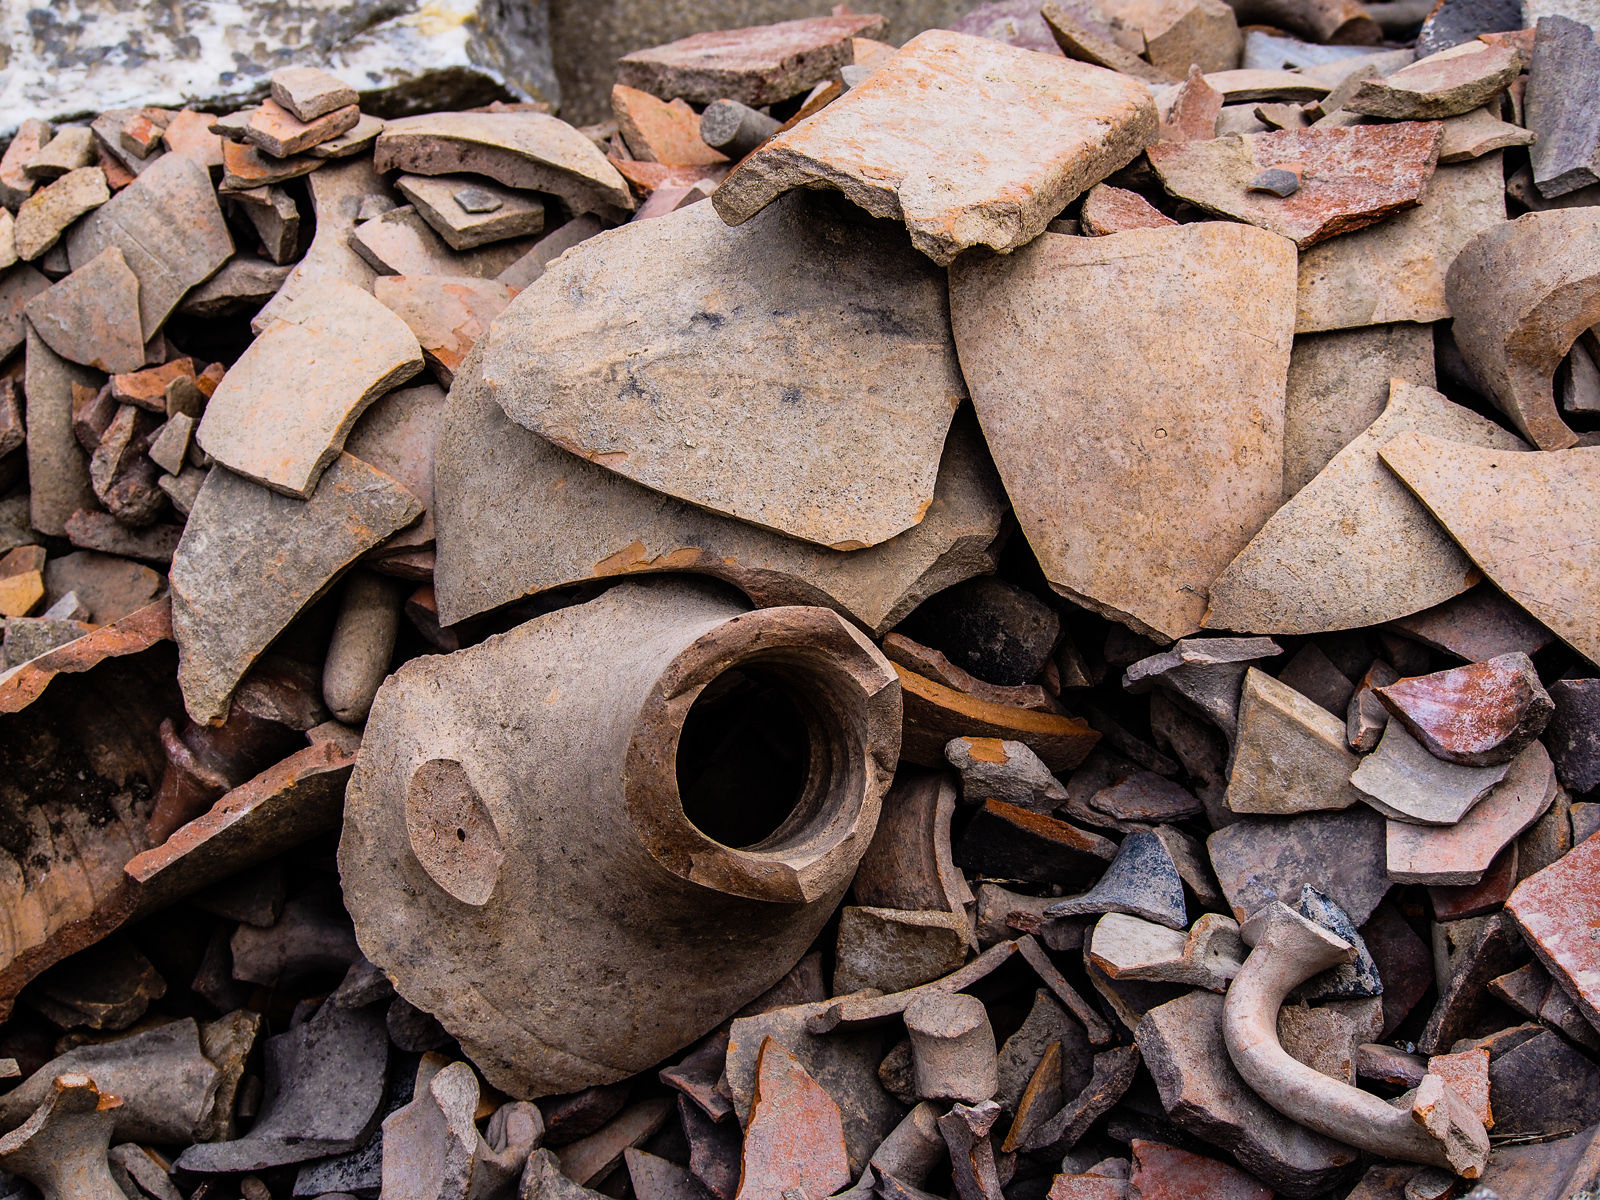 An image showing a large pile of broken pieces of pottery in different sizes and shapes. It is possible to see the upper half of a broken pot in the pile as well as several handles. The pieces are different colors, thicknesses, and shapes and it possible to assume that the pieces in the photo came from many different individual pots.